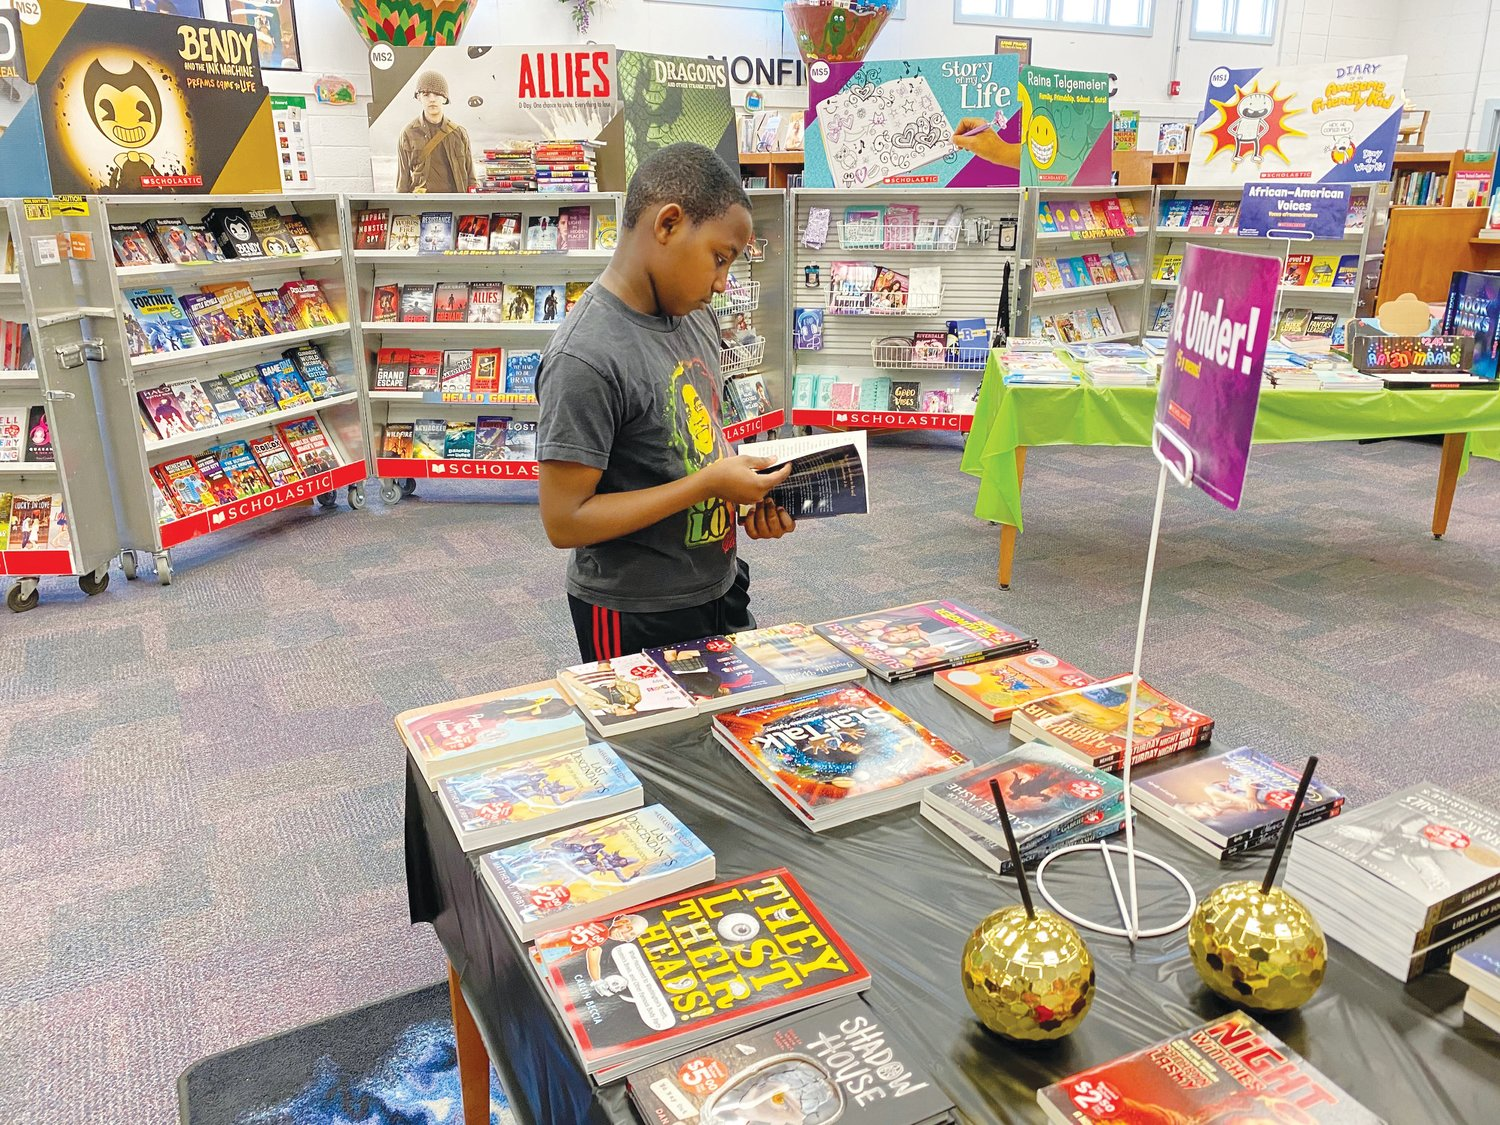 Kids make selections at local book fair.Fifth-grader Zymeer Vick thumbs through a book during last week's book fair at Mount Olive Middle School.